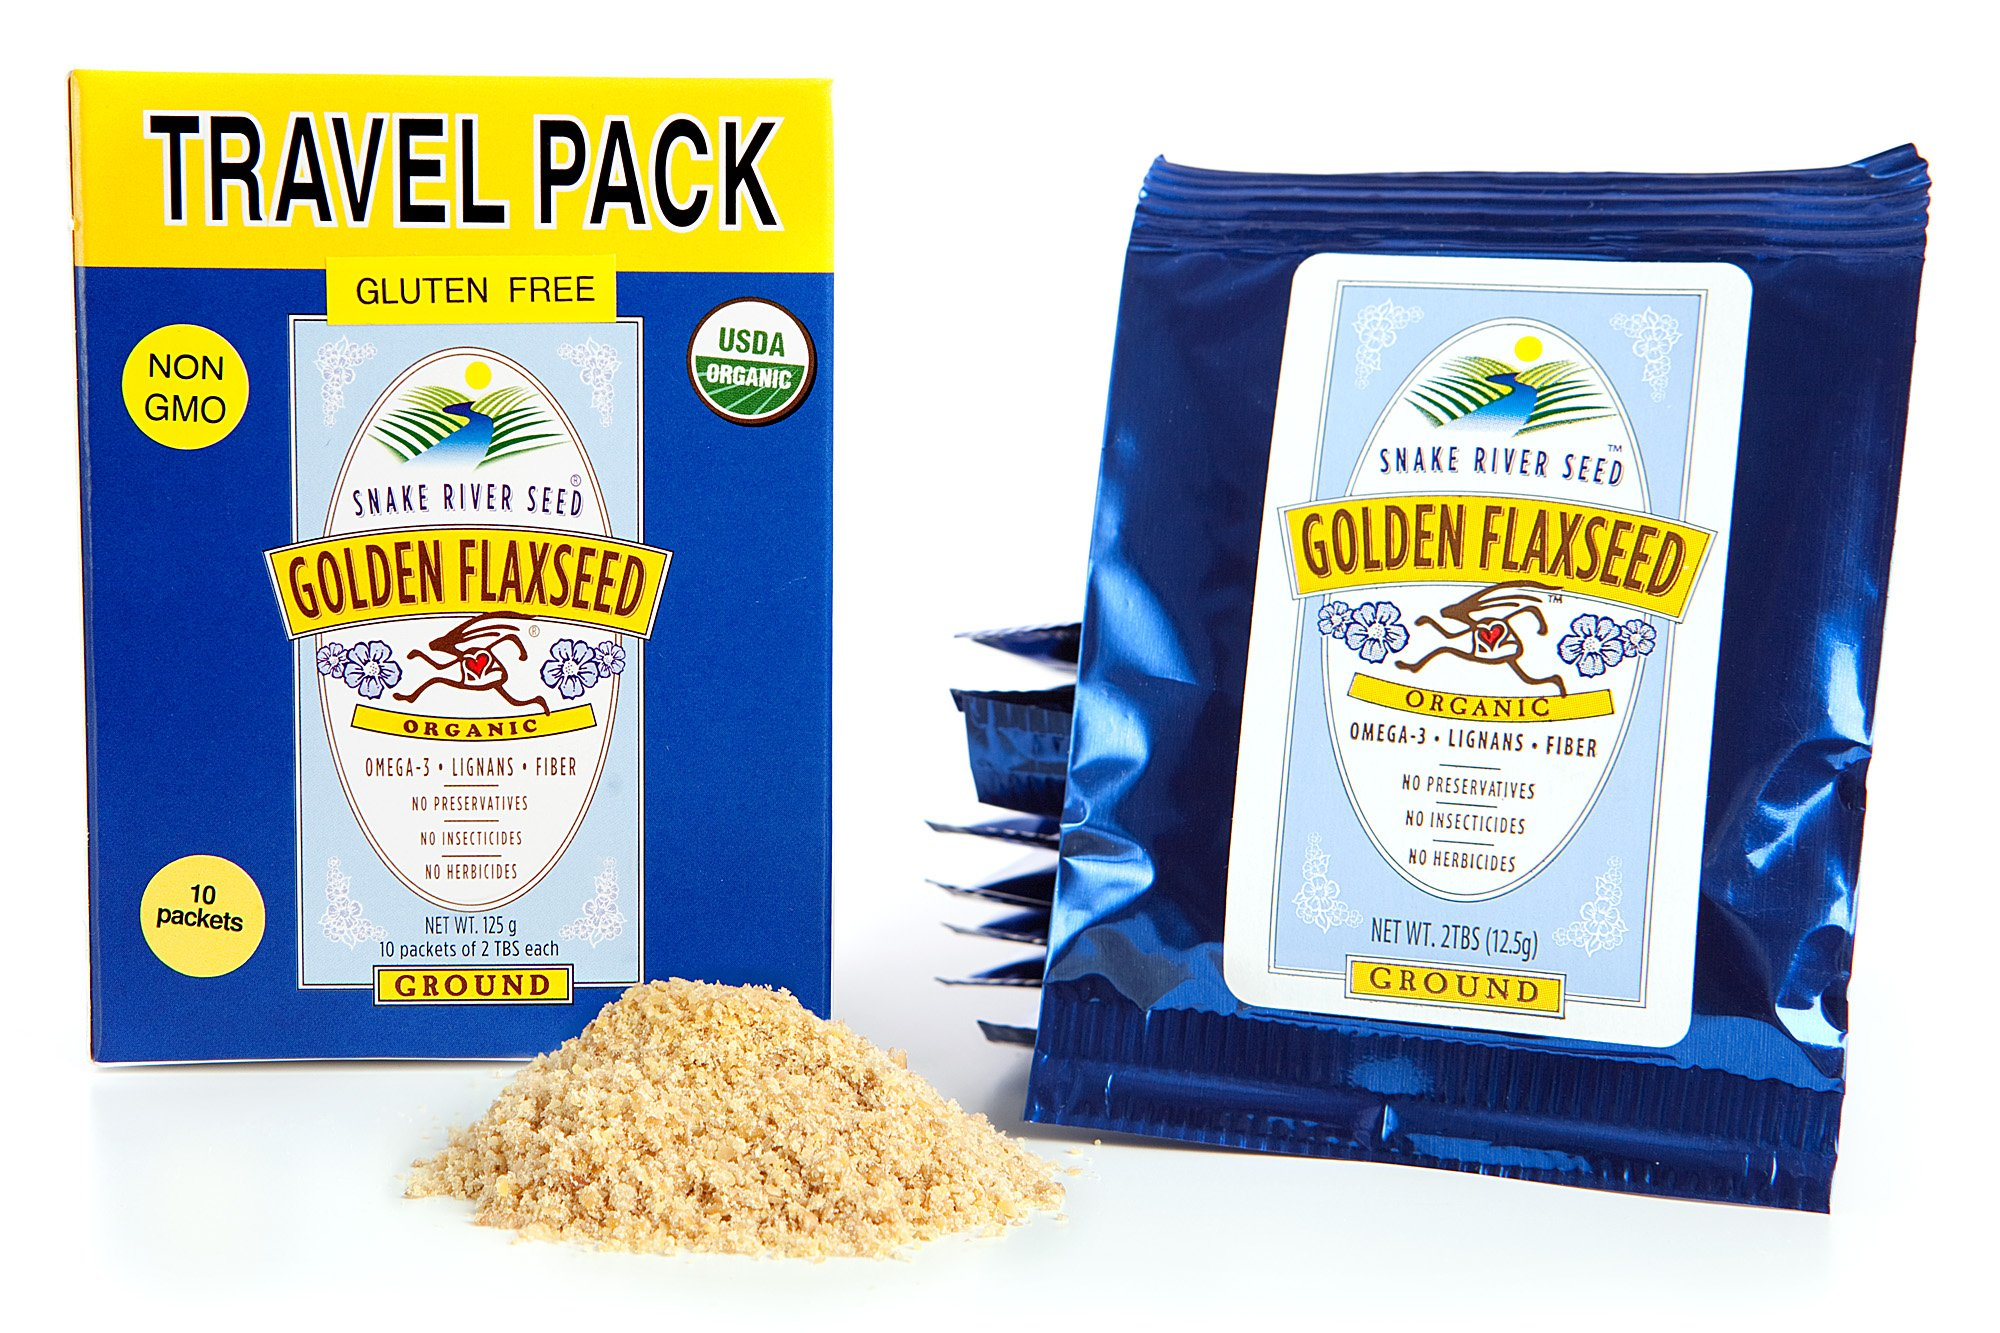 Farm Fresh 100% Natural Golden Flax Seed, Travel Pack, Freshly Ground, Organic, Gluten-Free, Non-GMO, Nutty Flavor by Snake River Seed (Image #1)